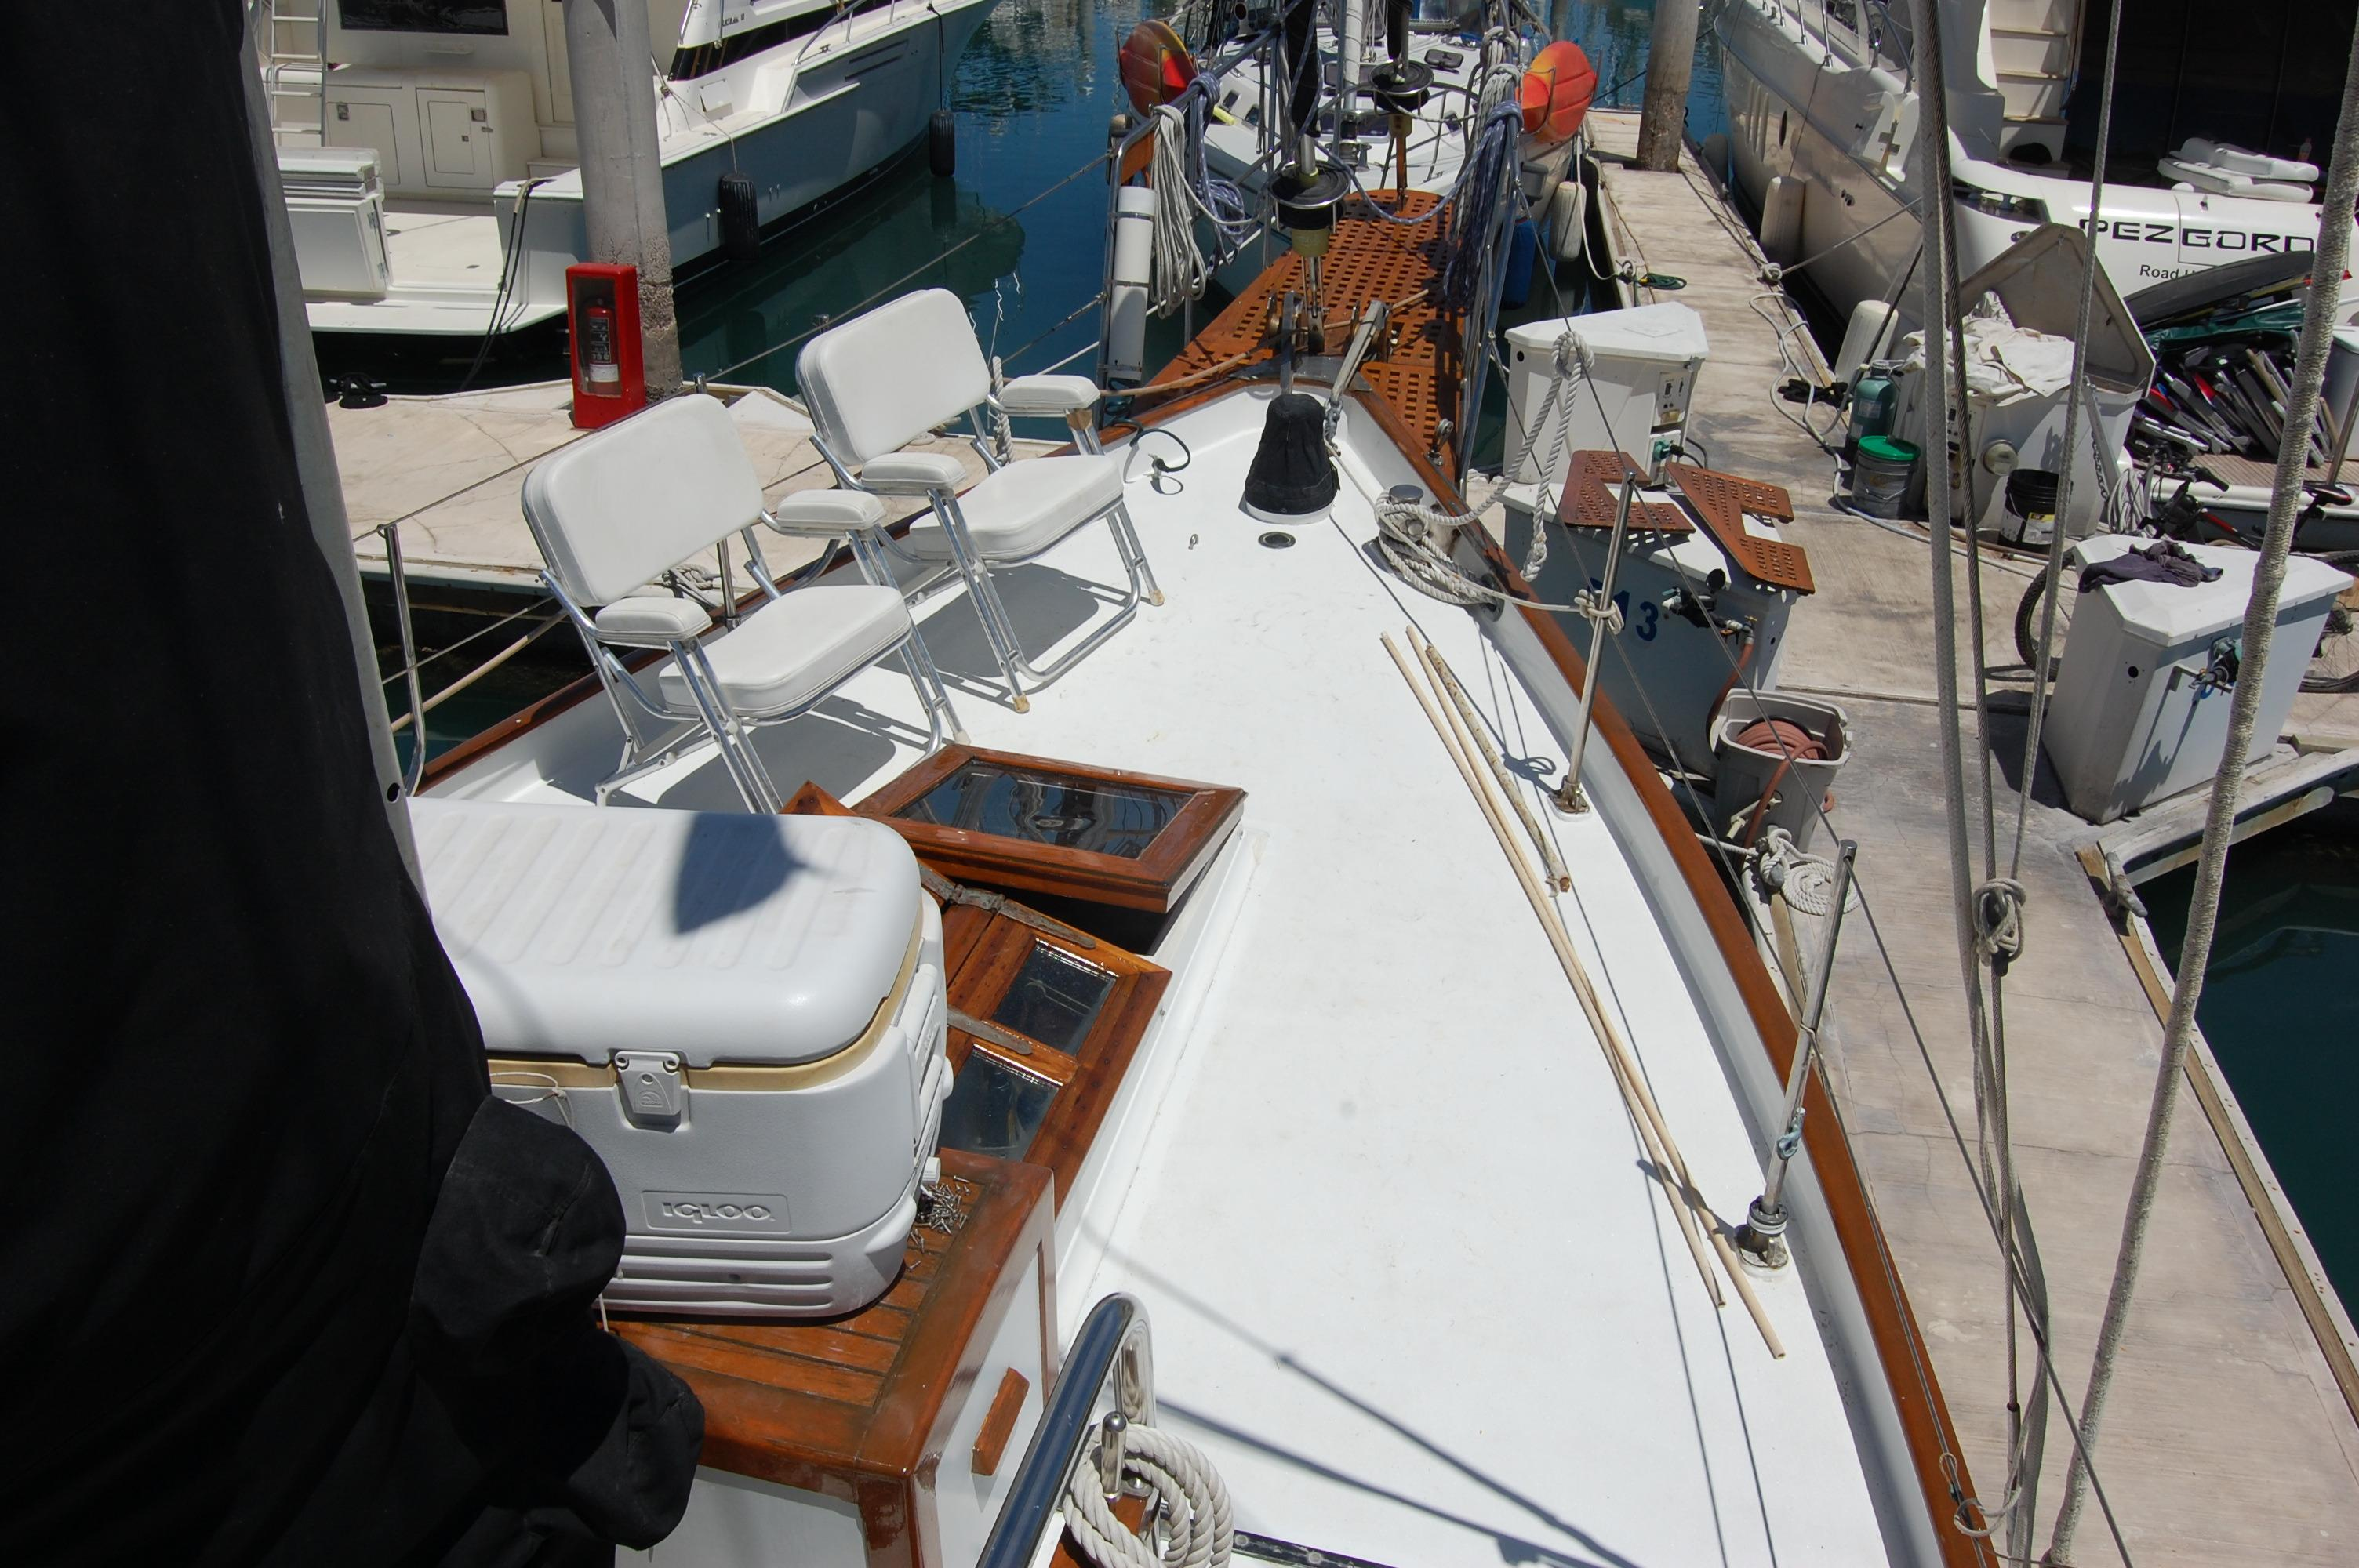 43' Spindrift Pilothouse Cutter+Photo 7